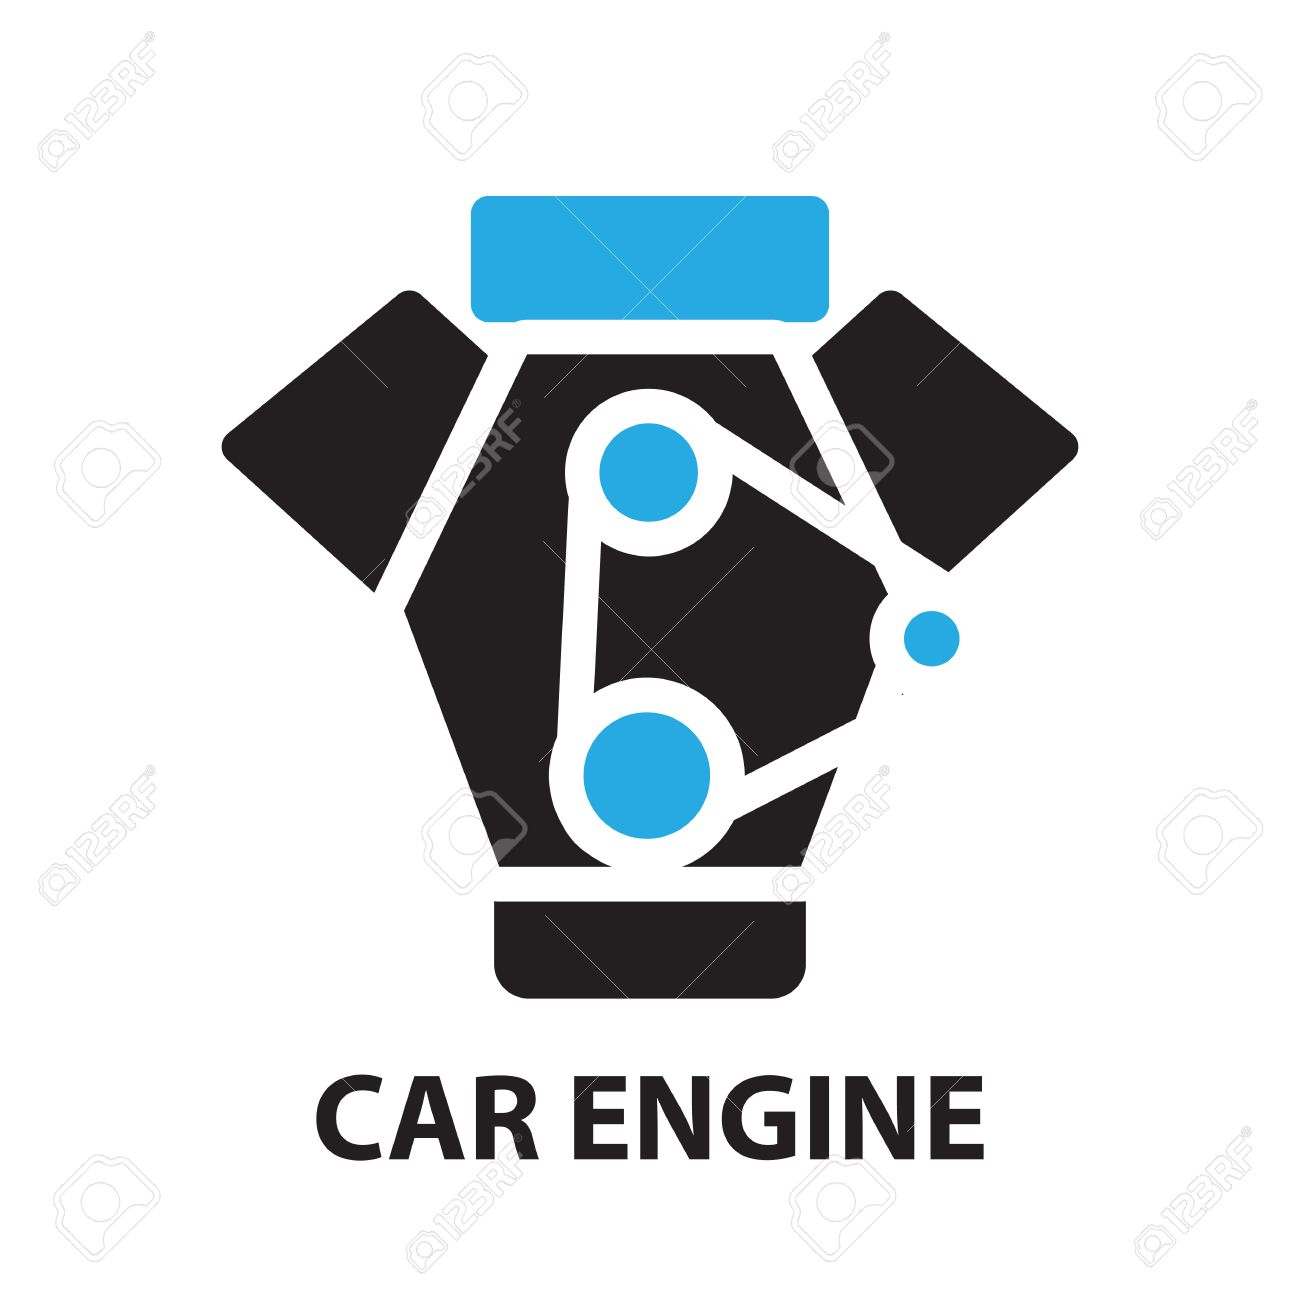 31,724 Car Engine Stock Vector Illustration And Royalty Free Car ...